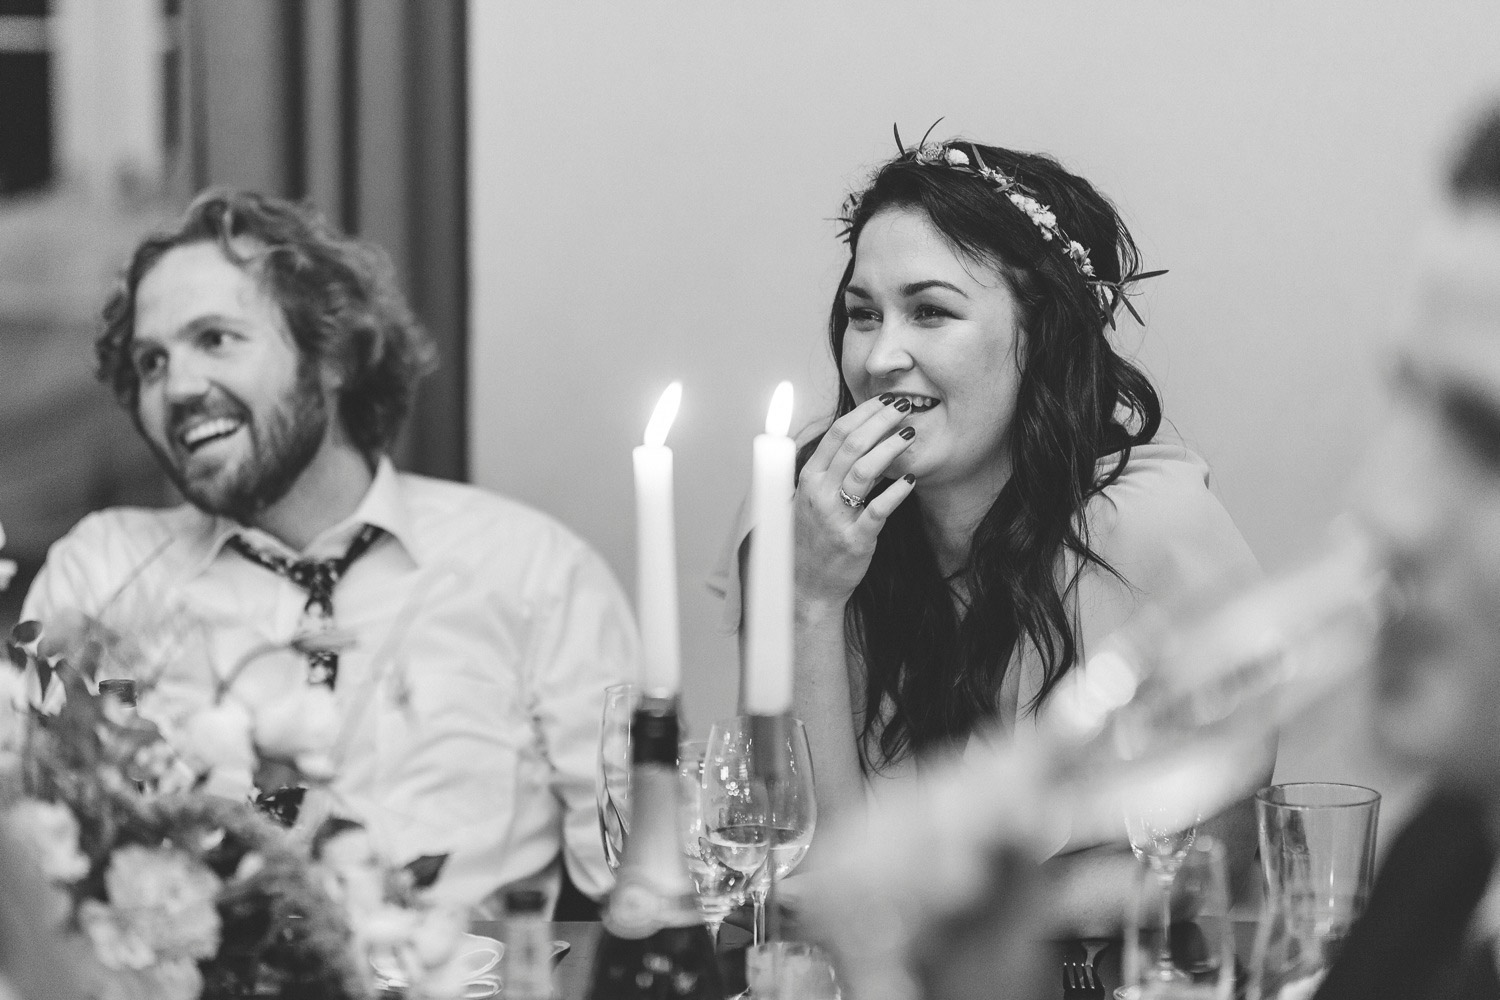 western-cape-photoghers-gen-scott-greyton-wedding-photography-charlie-ray136.jpg